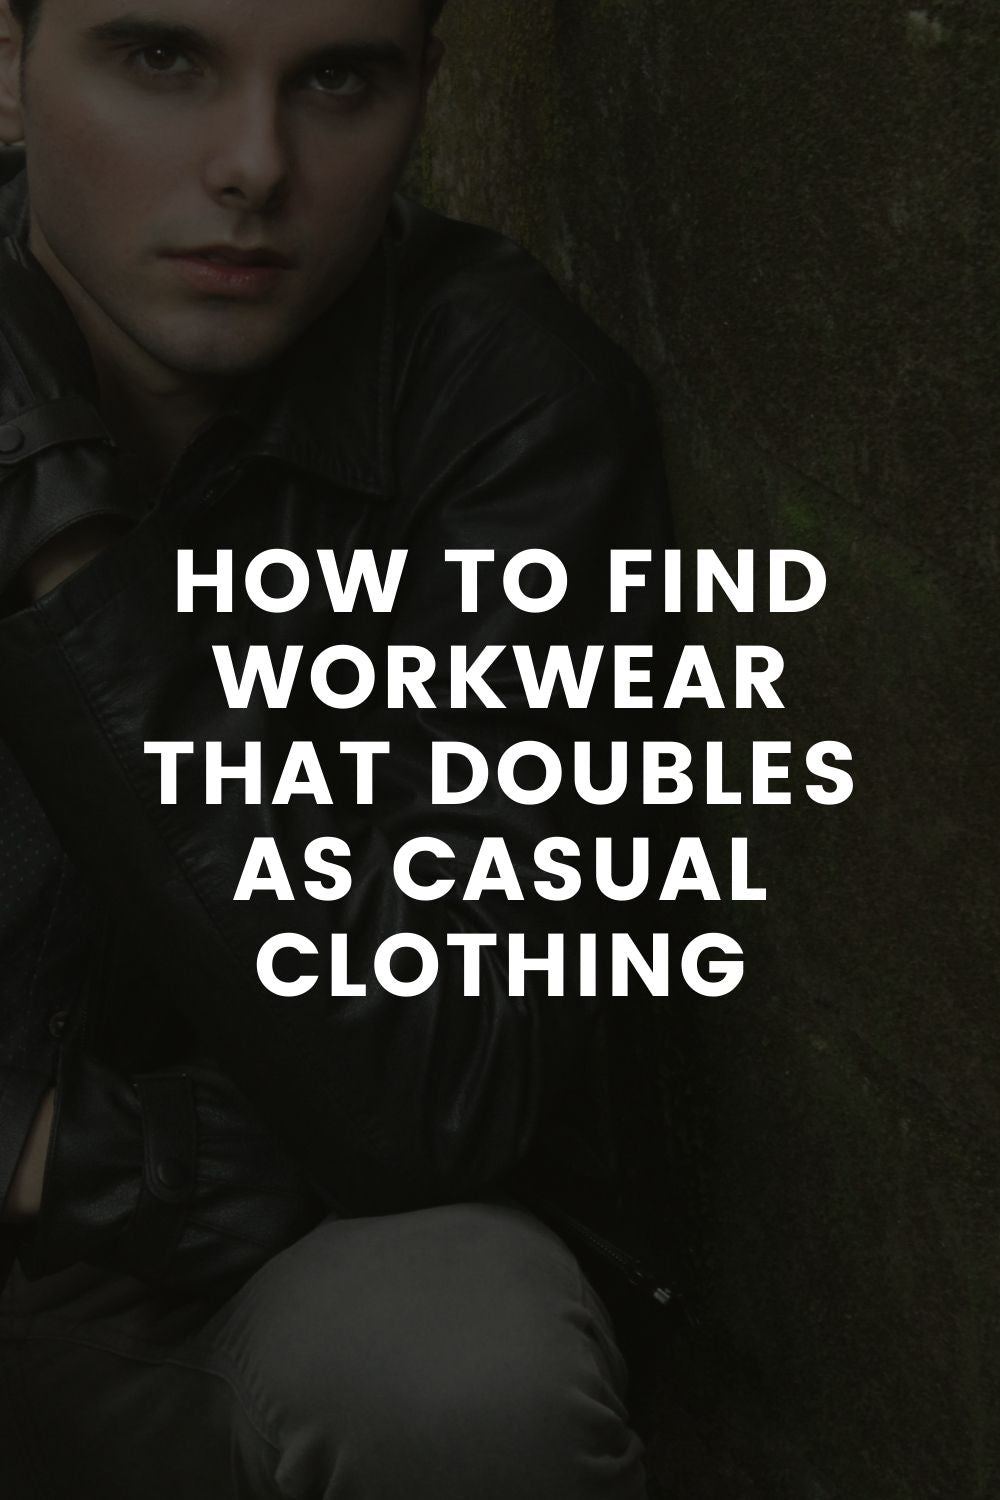 How to Find Workwear that Doubles as Casual Clothing